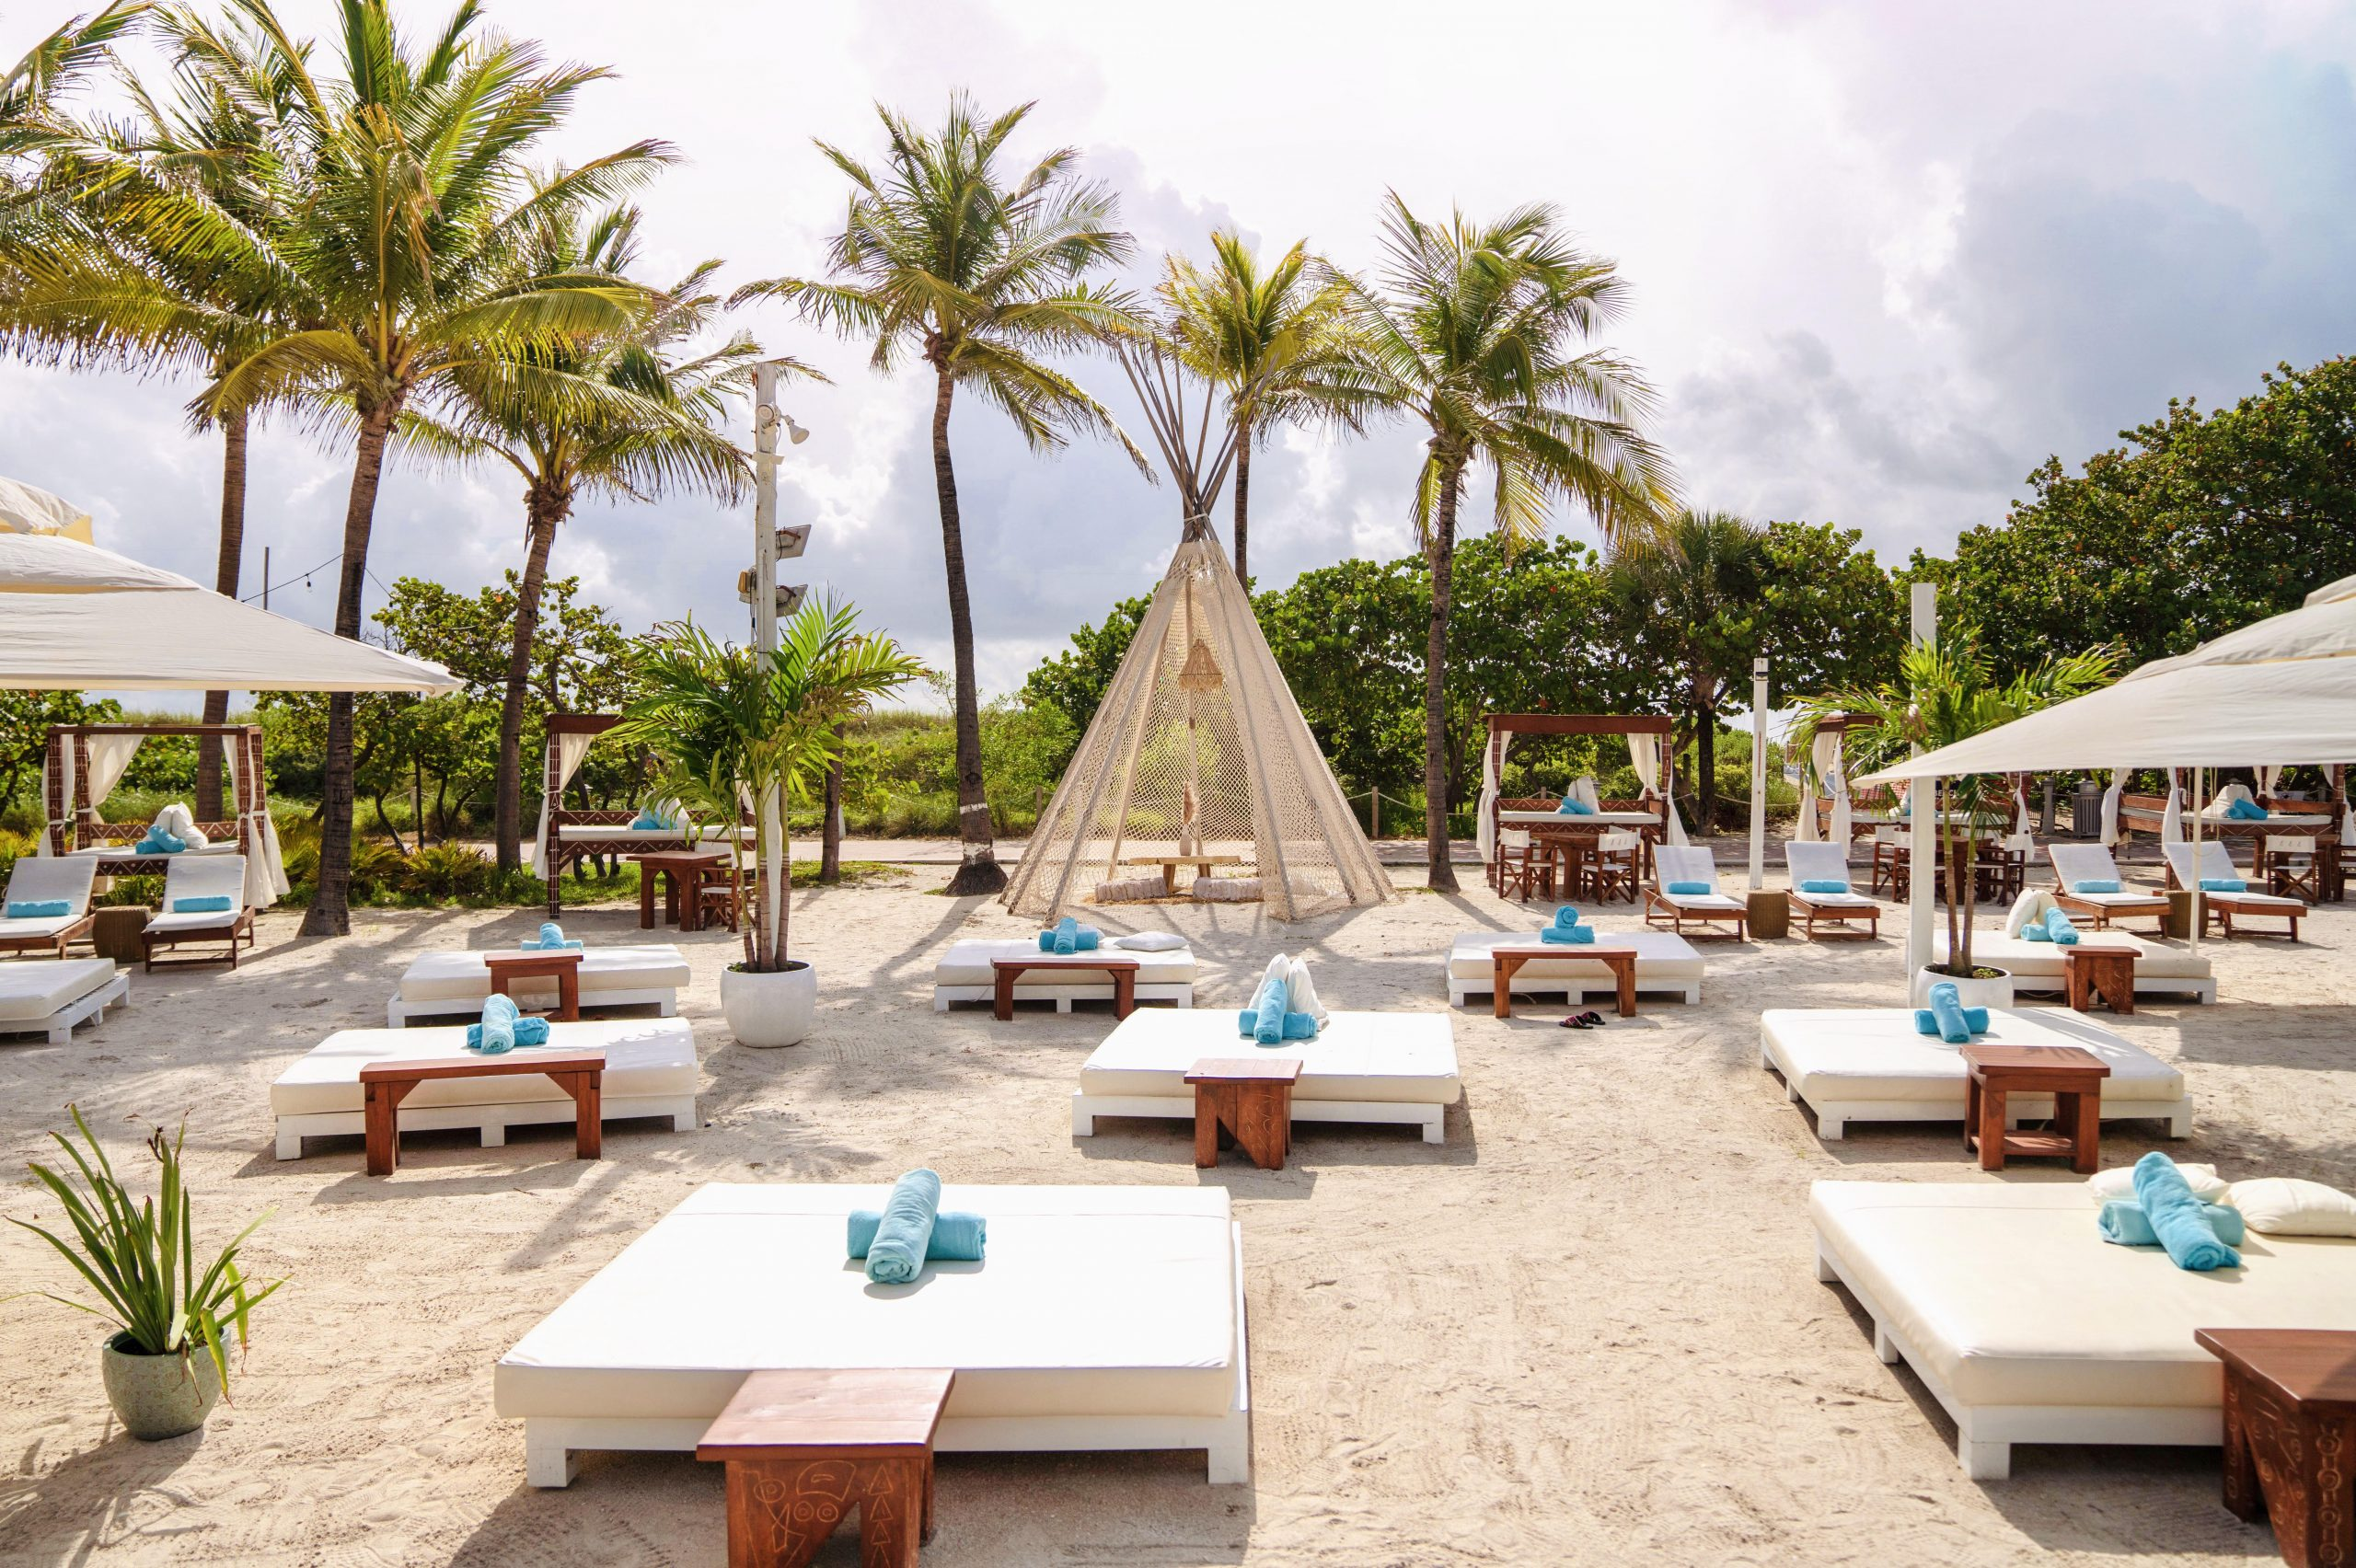 Nikki Beach invites guests for a full day experience with It's Always Summer Package